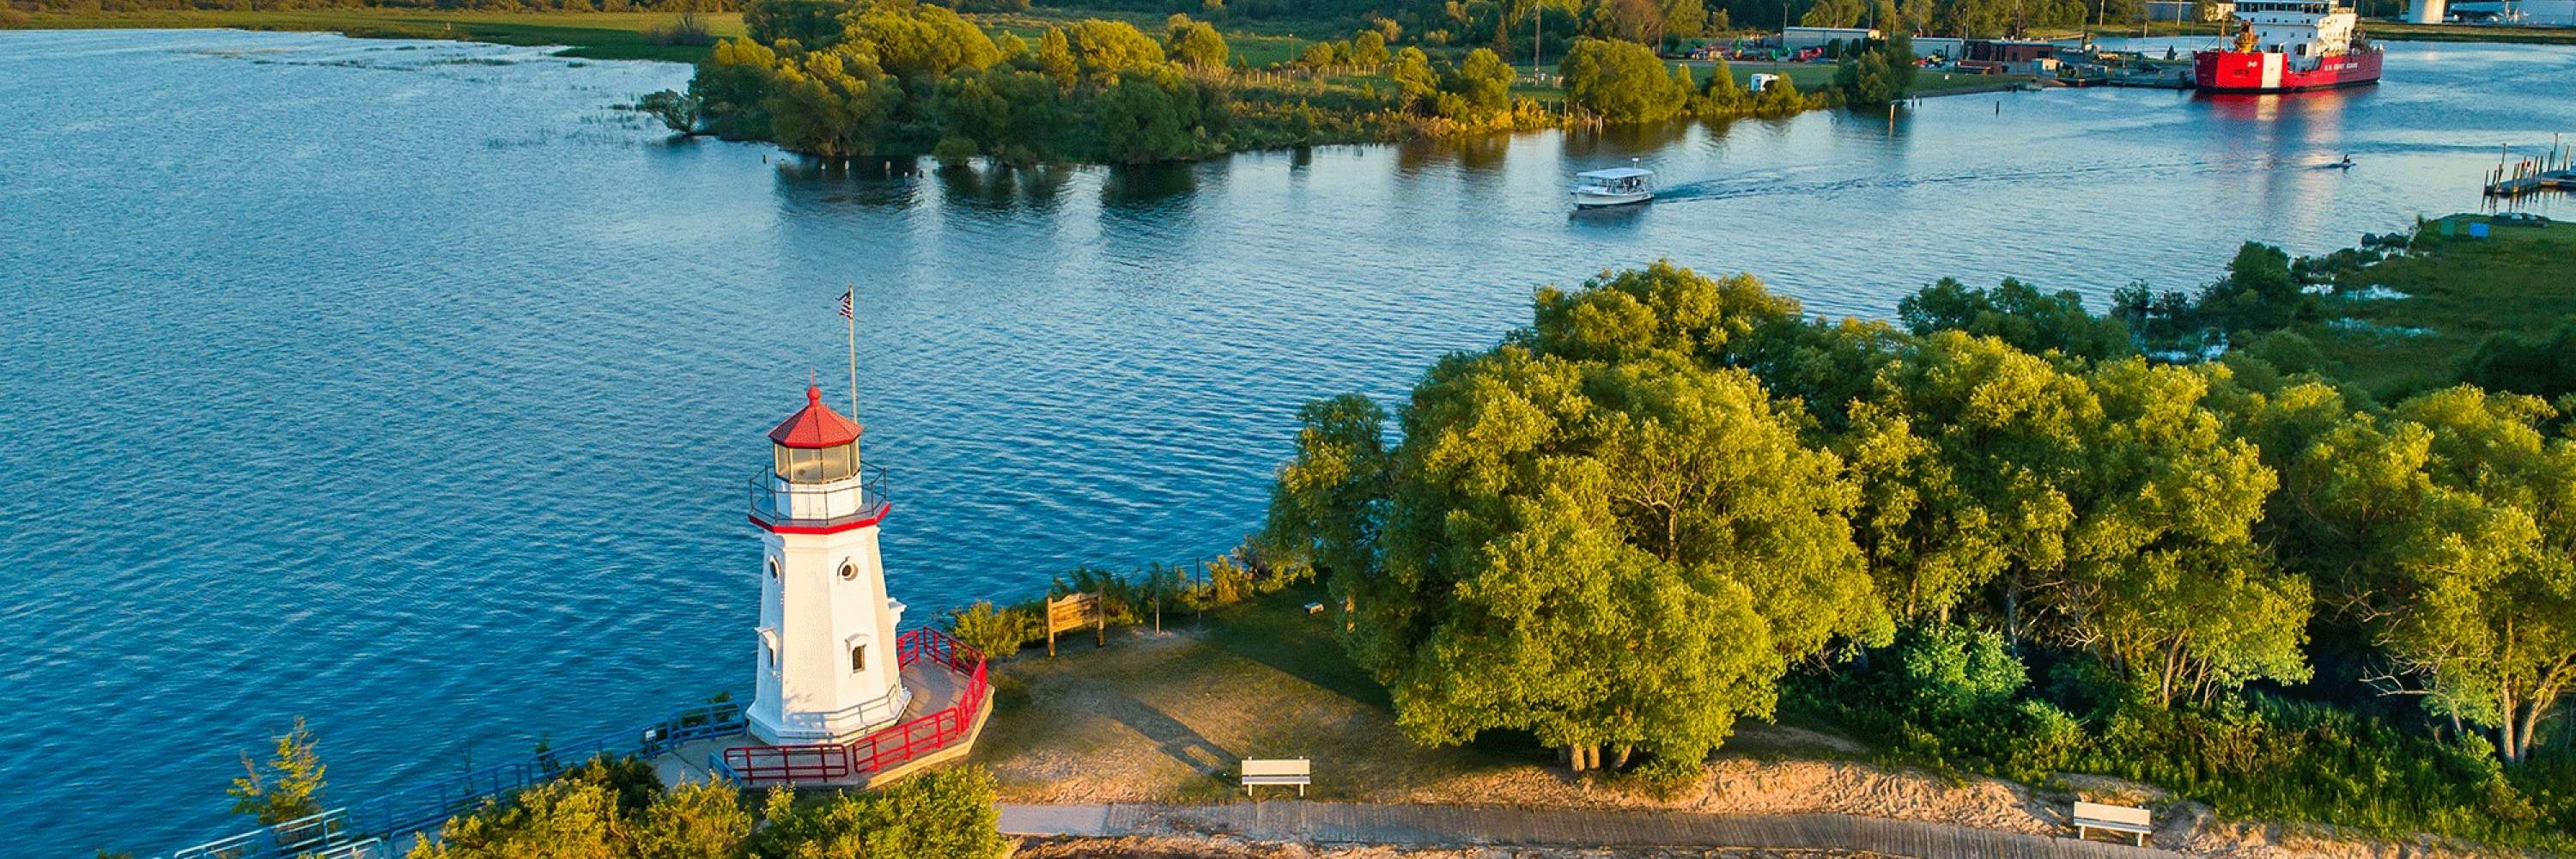 aerial view of lake with lighthouse on the corner of the waterway